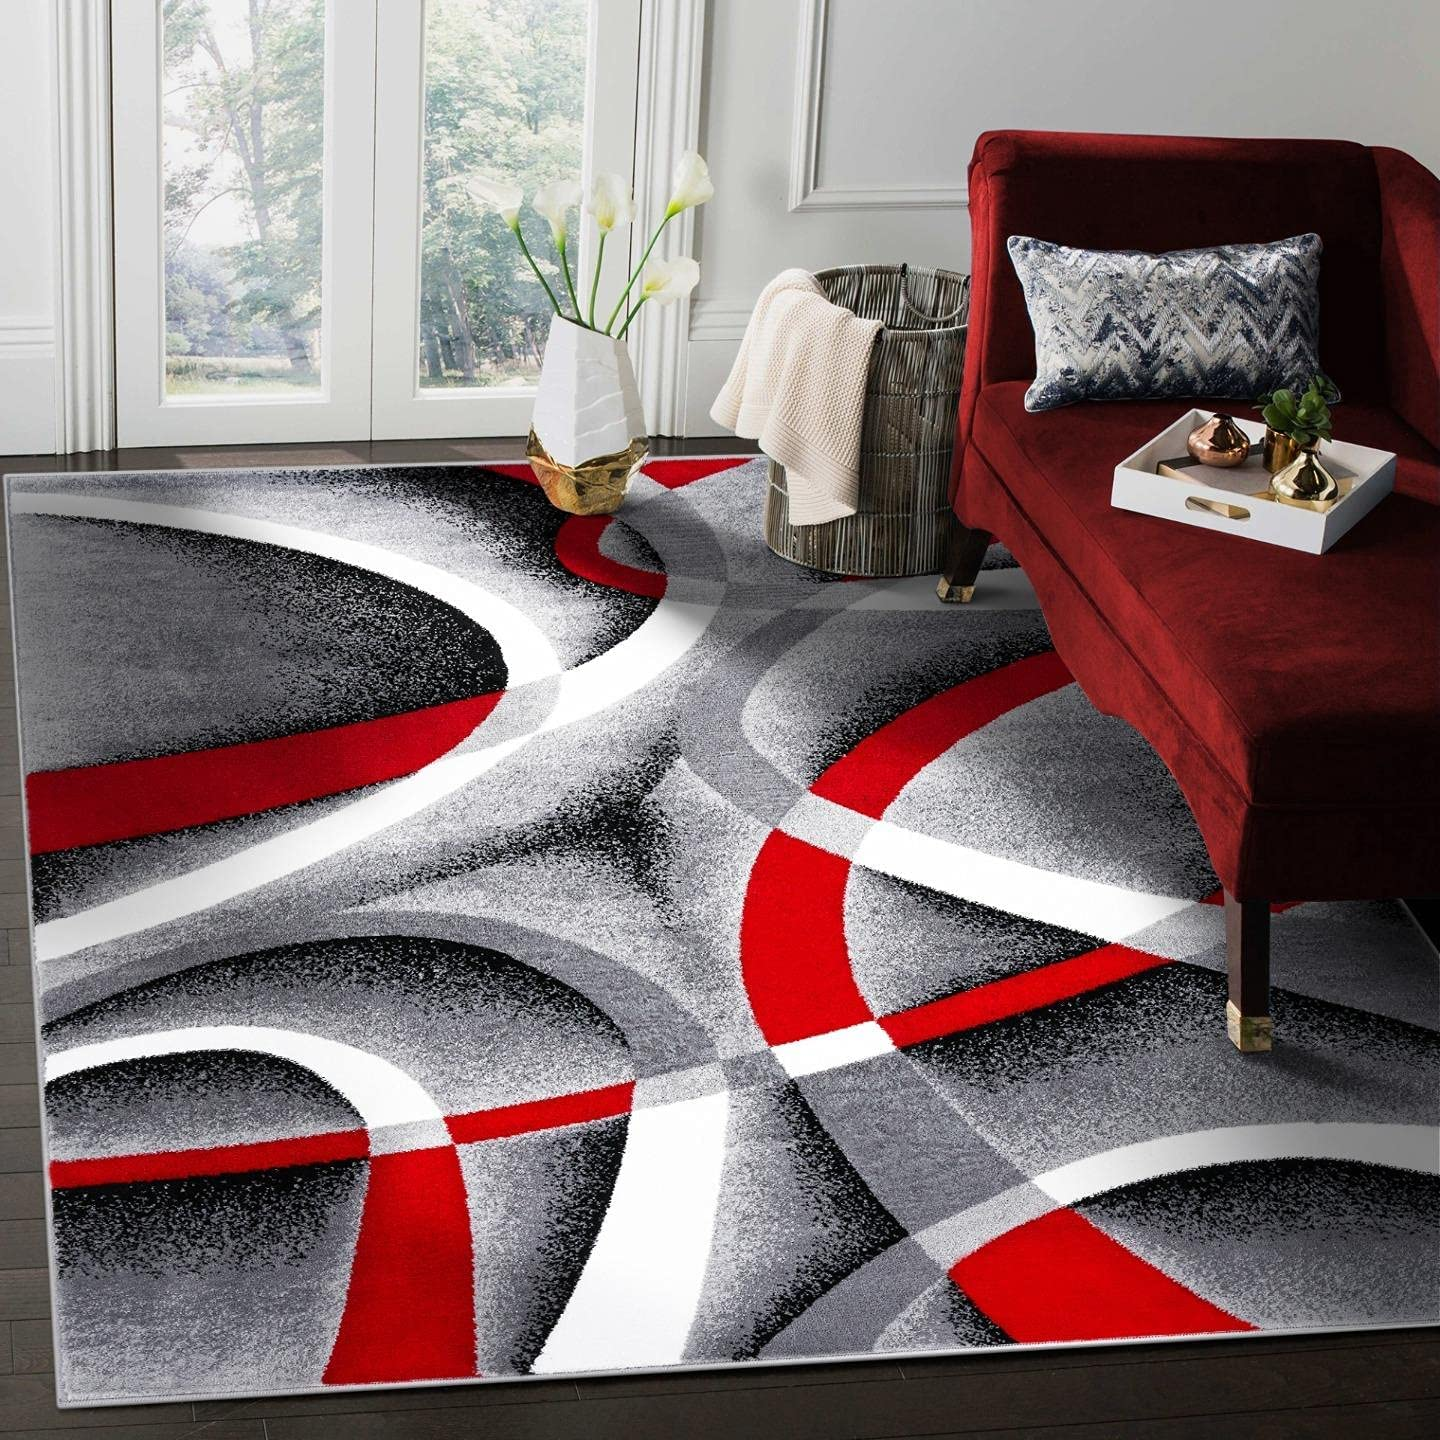 2305 Gray Black Red White 10 x 13 Modern Abstract Area Rug Carpet